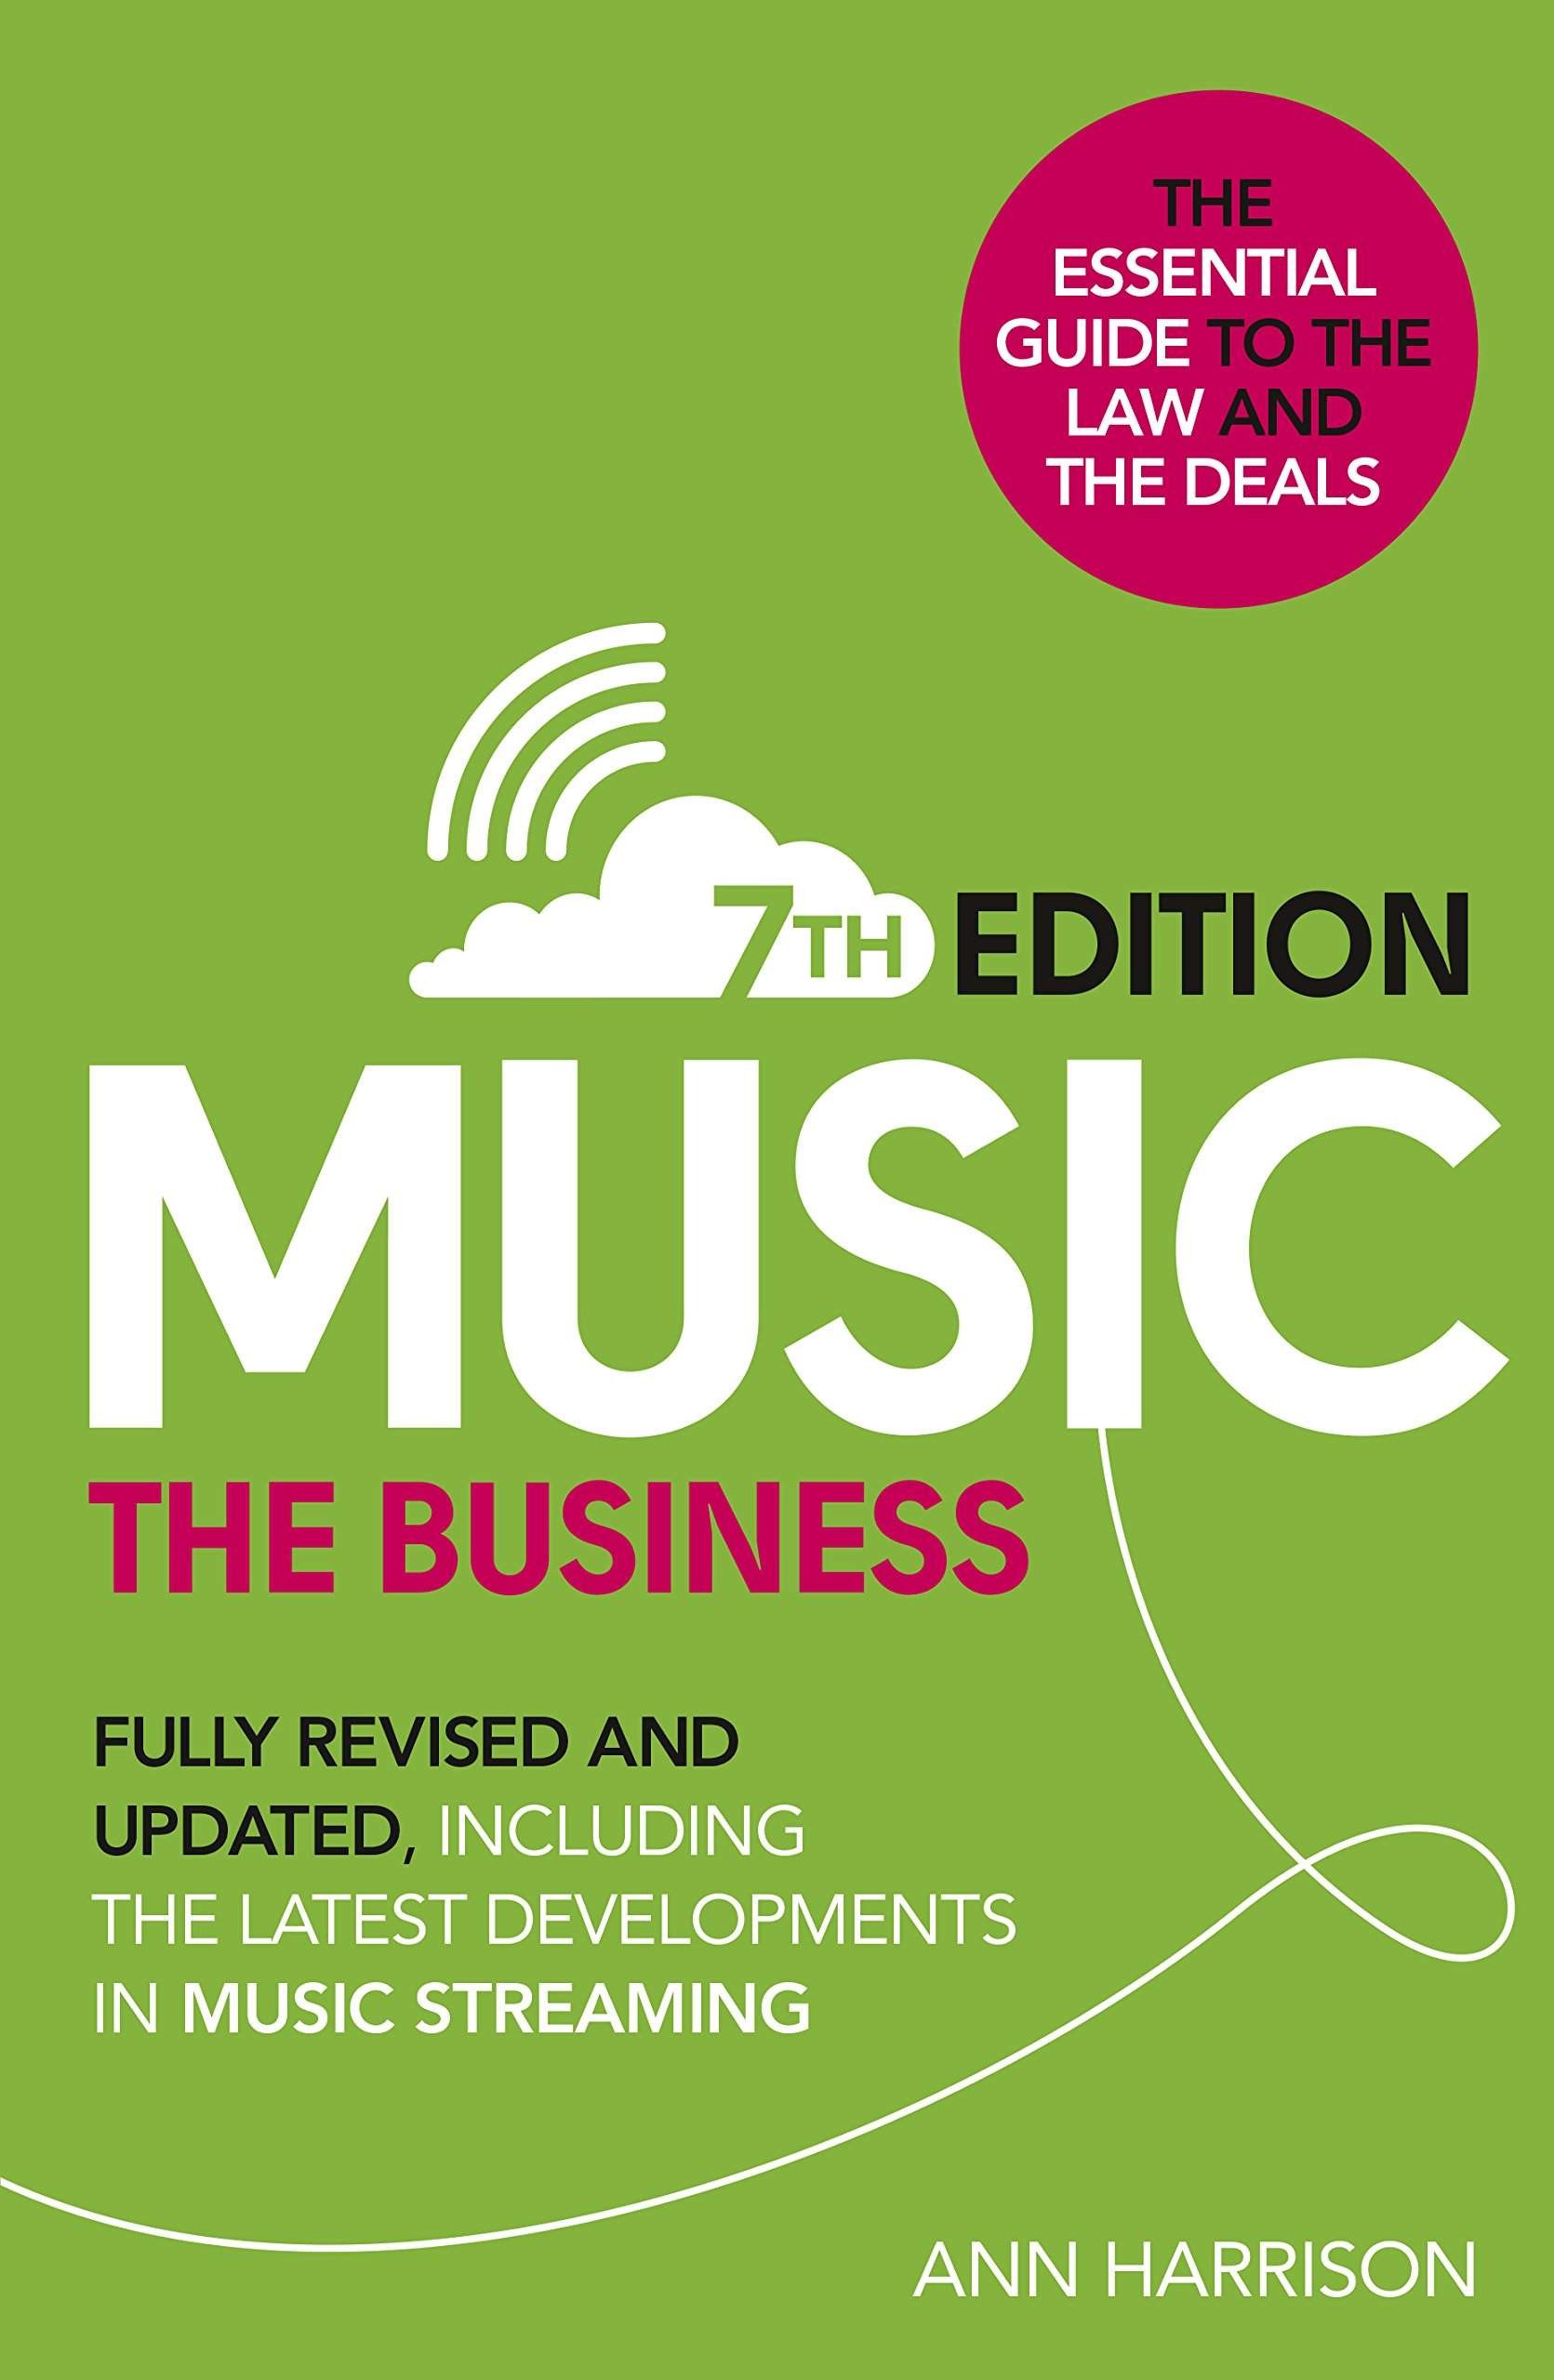 Music the business 7th edition fully revised and updated music the business 7th edition fully revised and updated including the latest developments in music streaming amazon ann harrison books fandeluxe Images